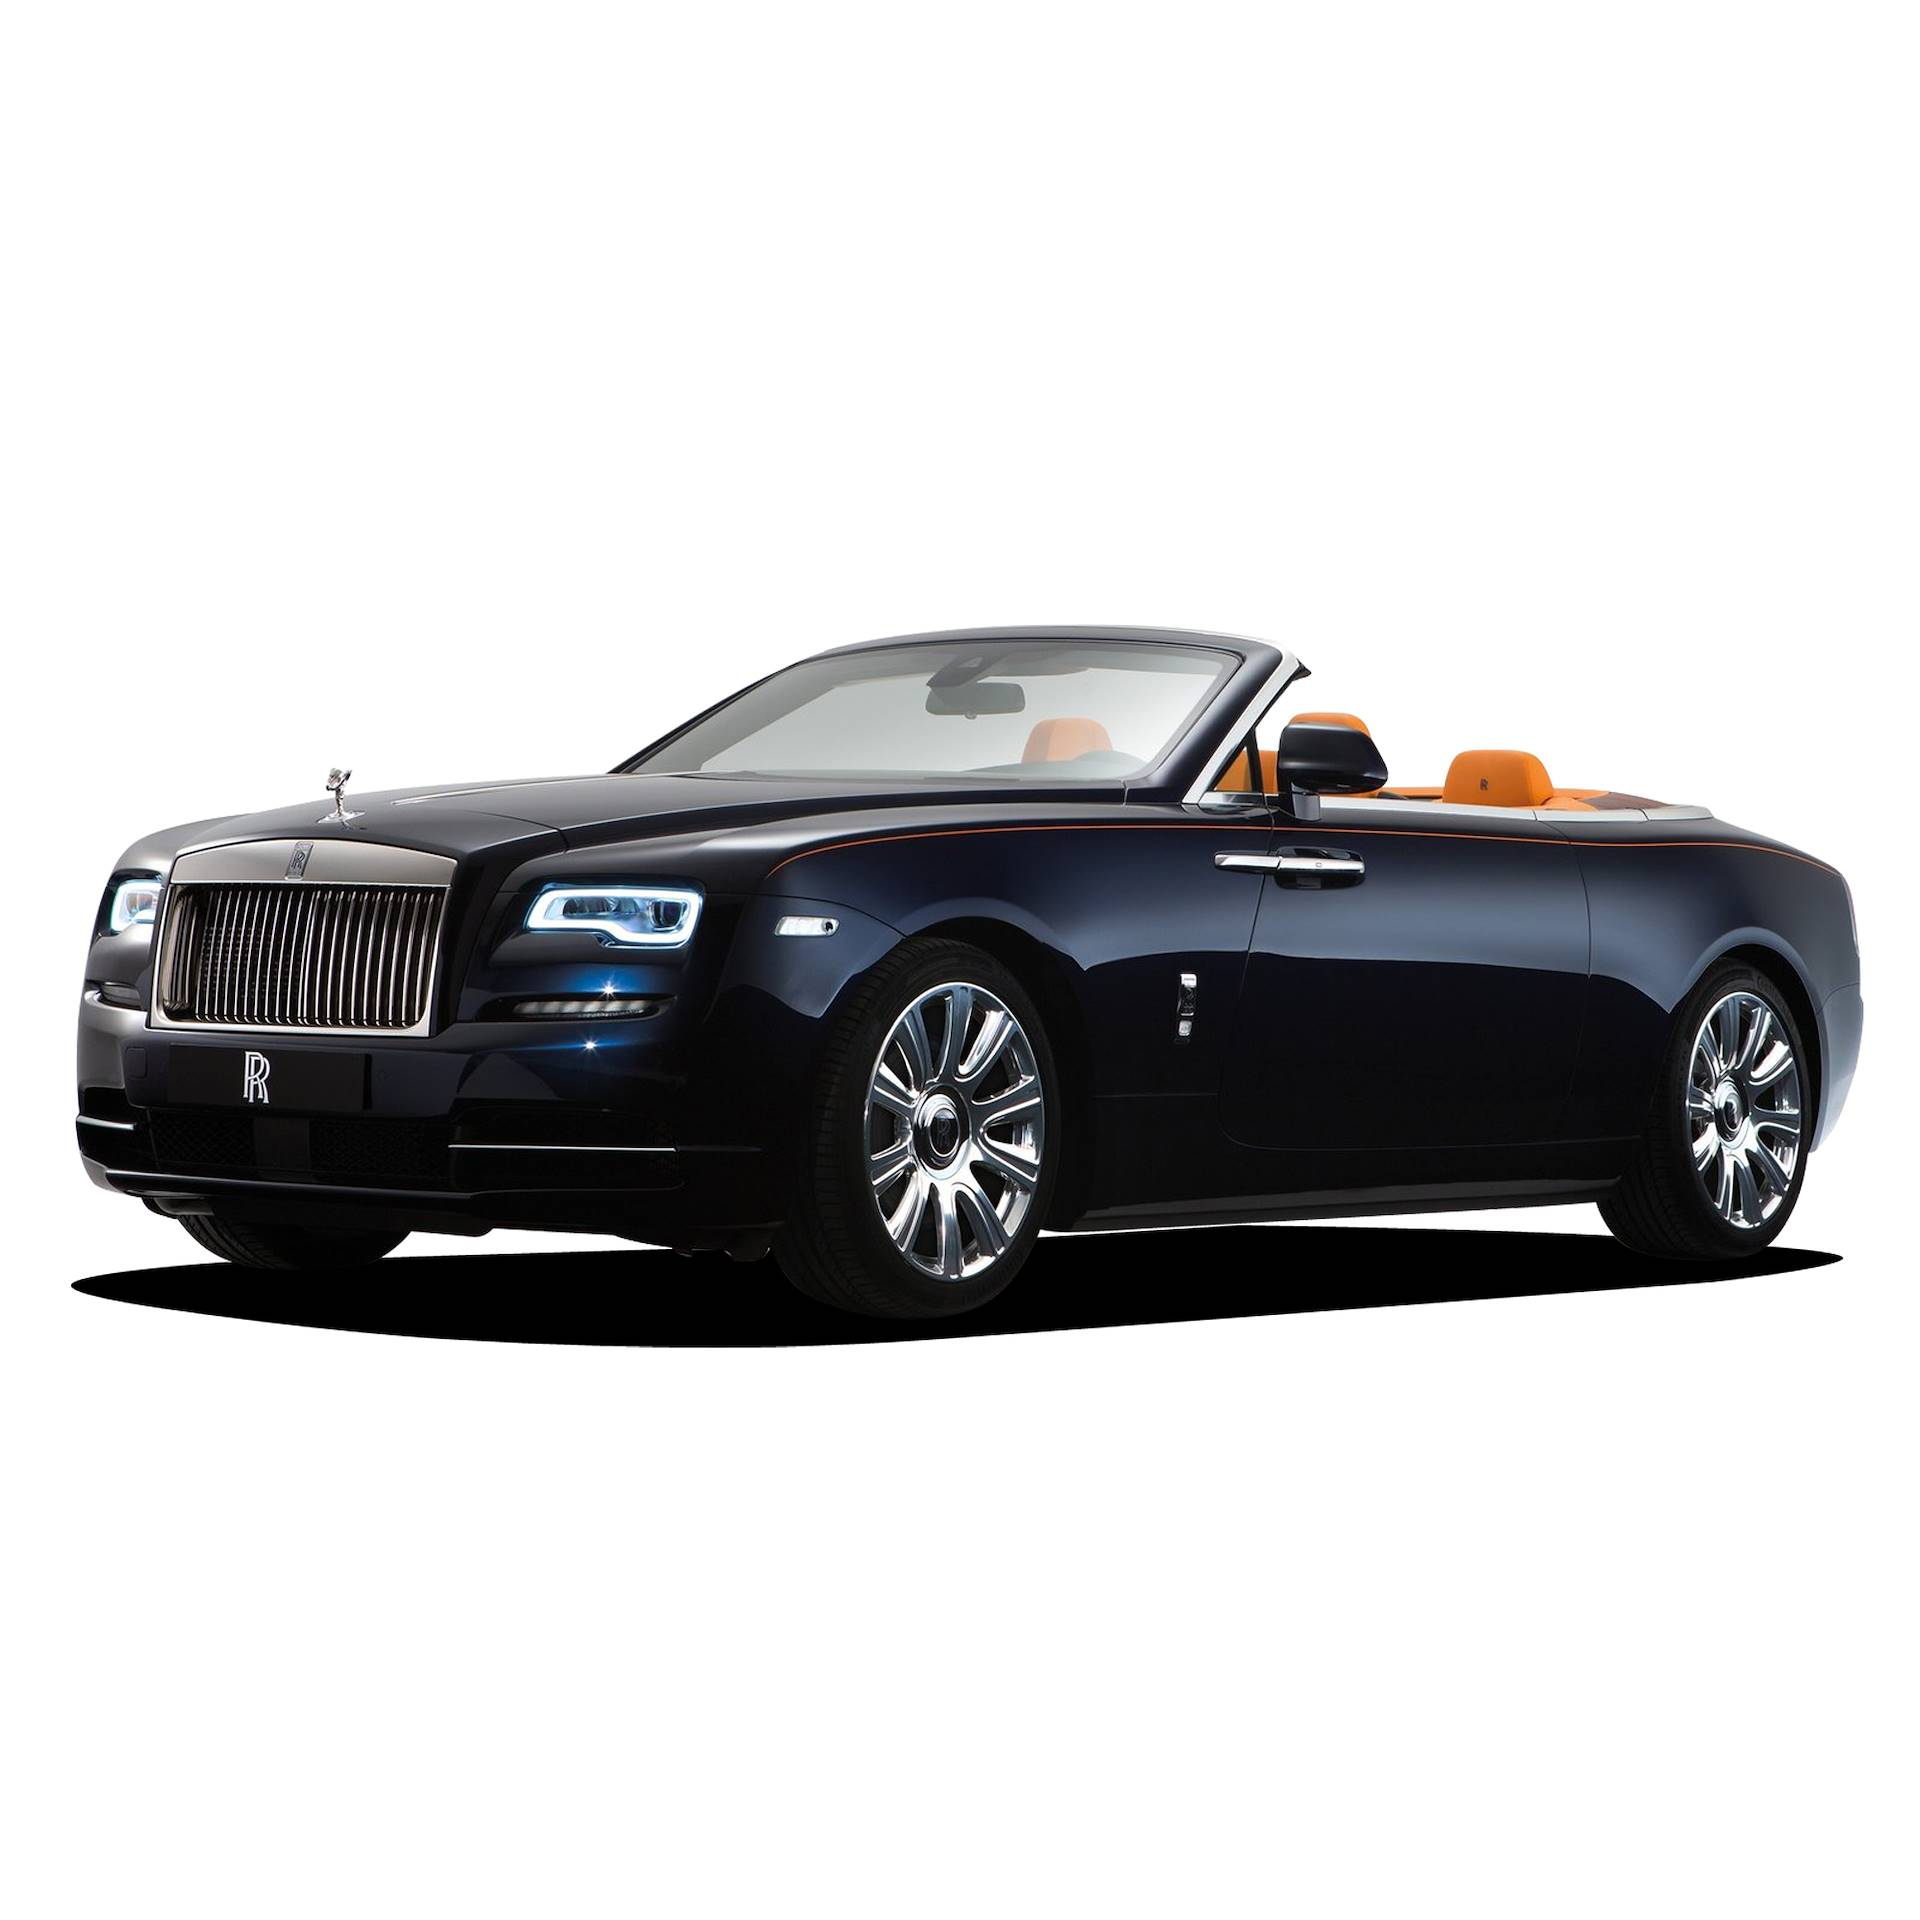 ROLLS ROYCE Dawn 6.6L V12 Bi-Turbo 2015 -> 2018